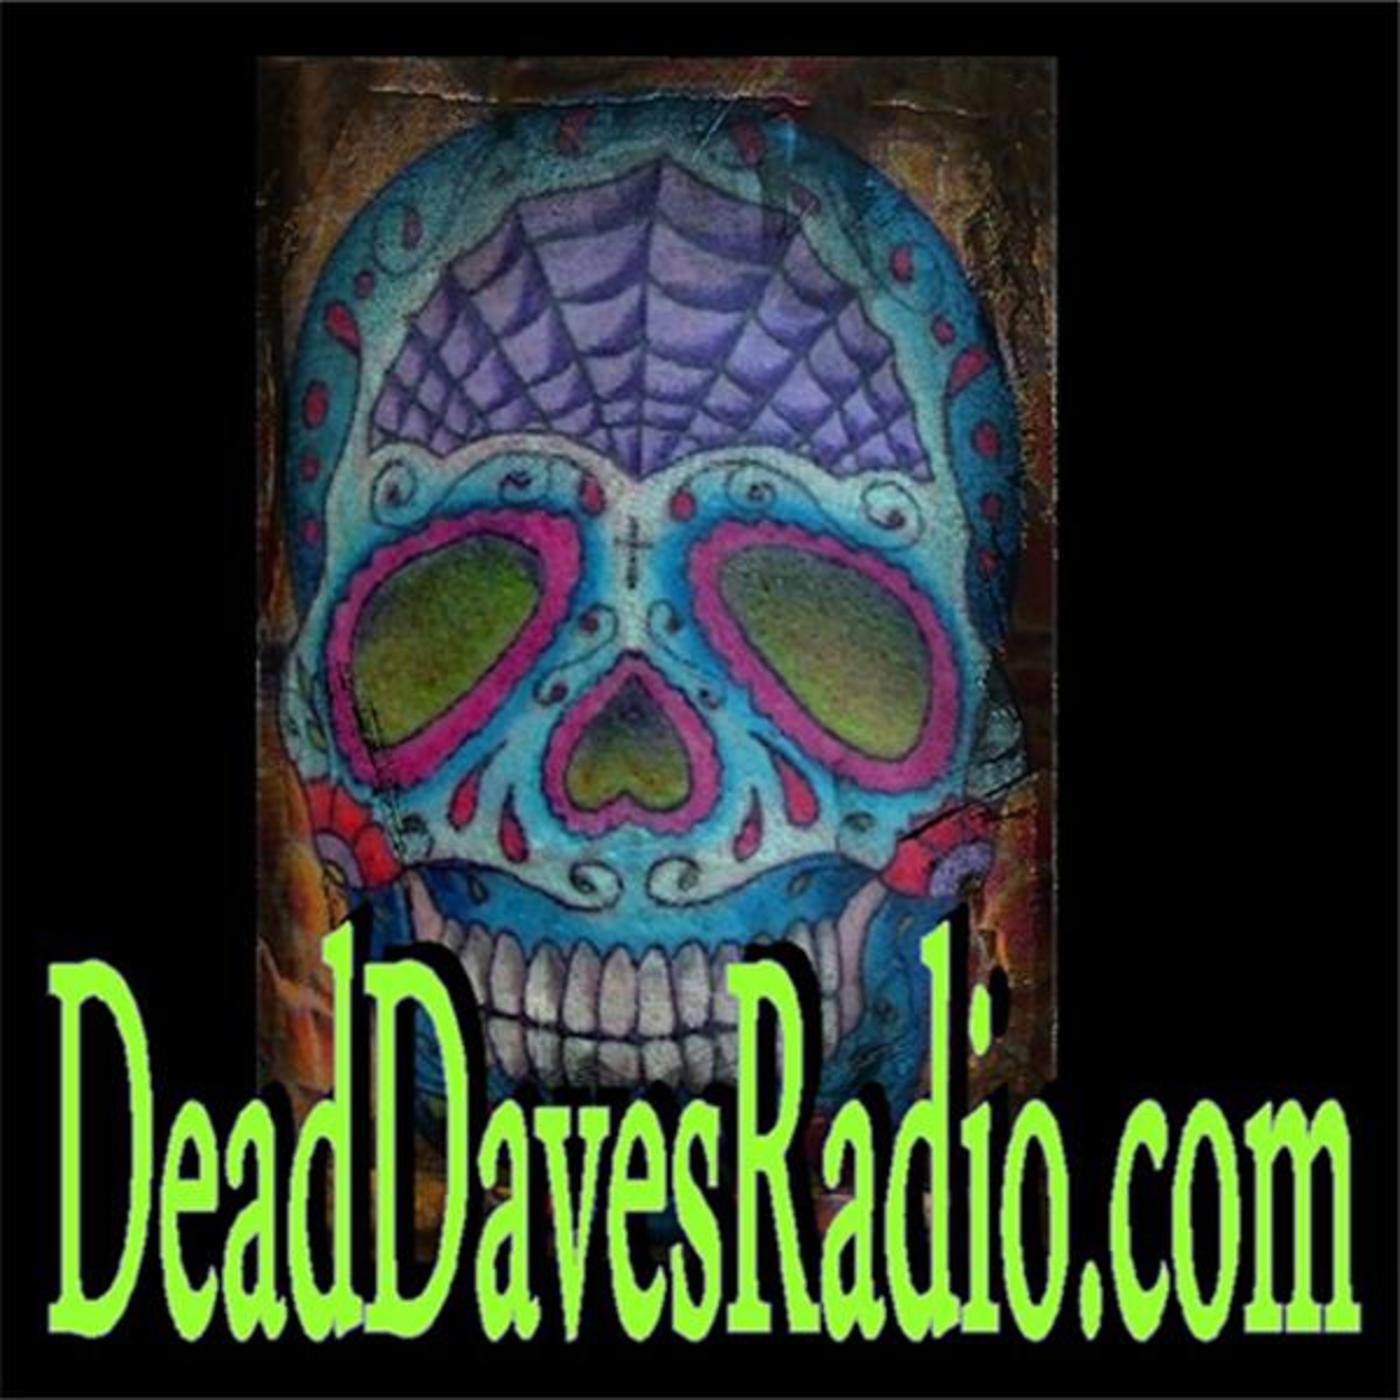 DeadDave's Internet Radio Show